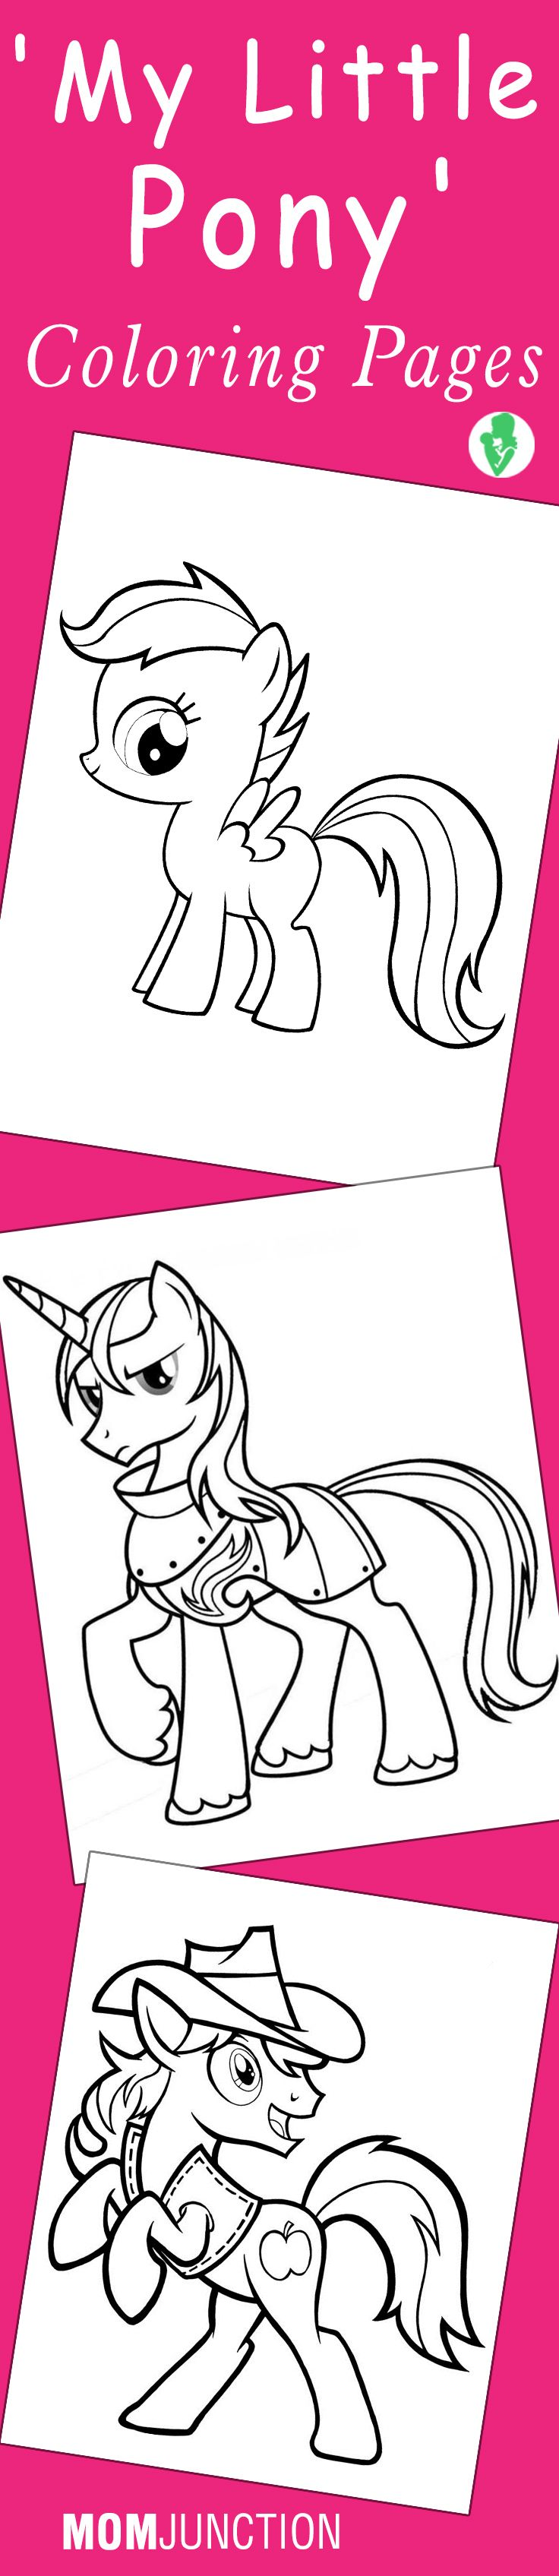 Top 25 'My Little Pony' Coloring Pages Your Toddler Will Love To Color